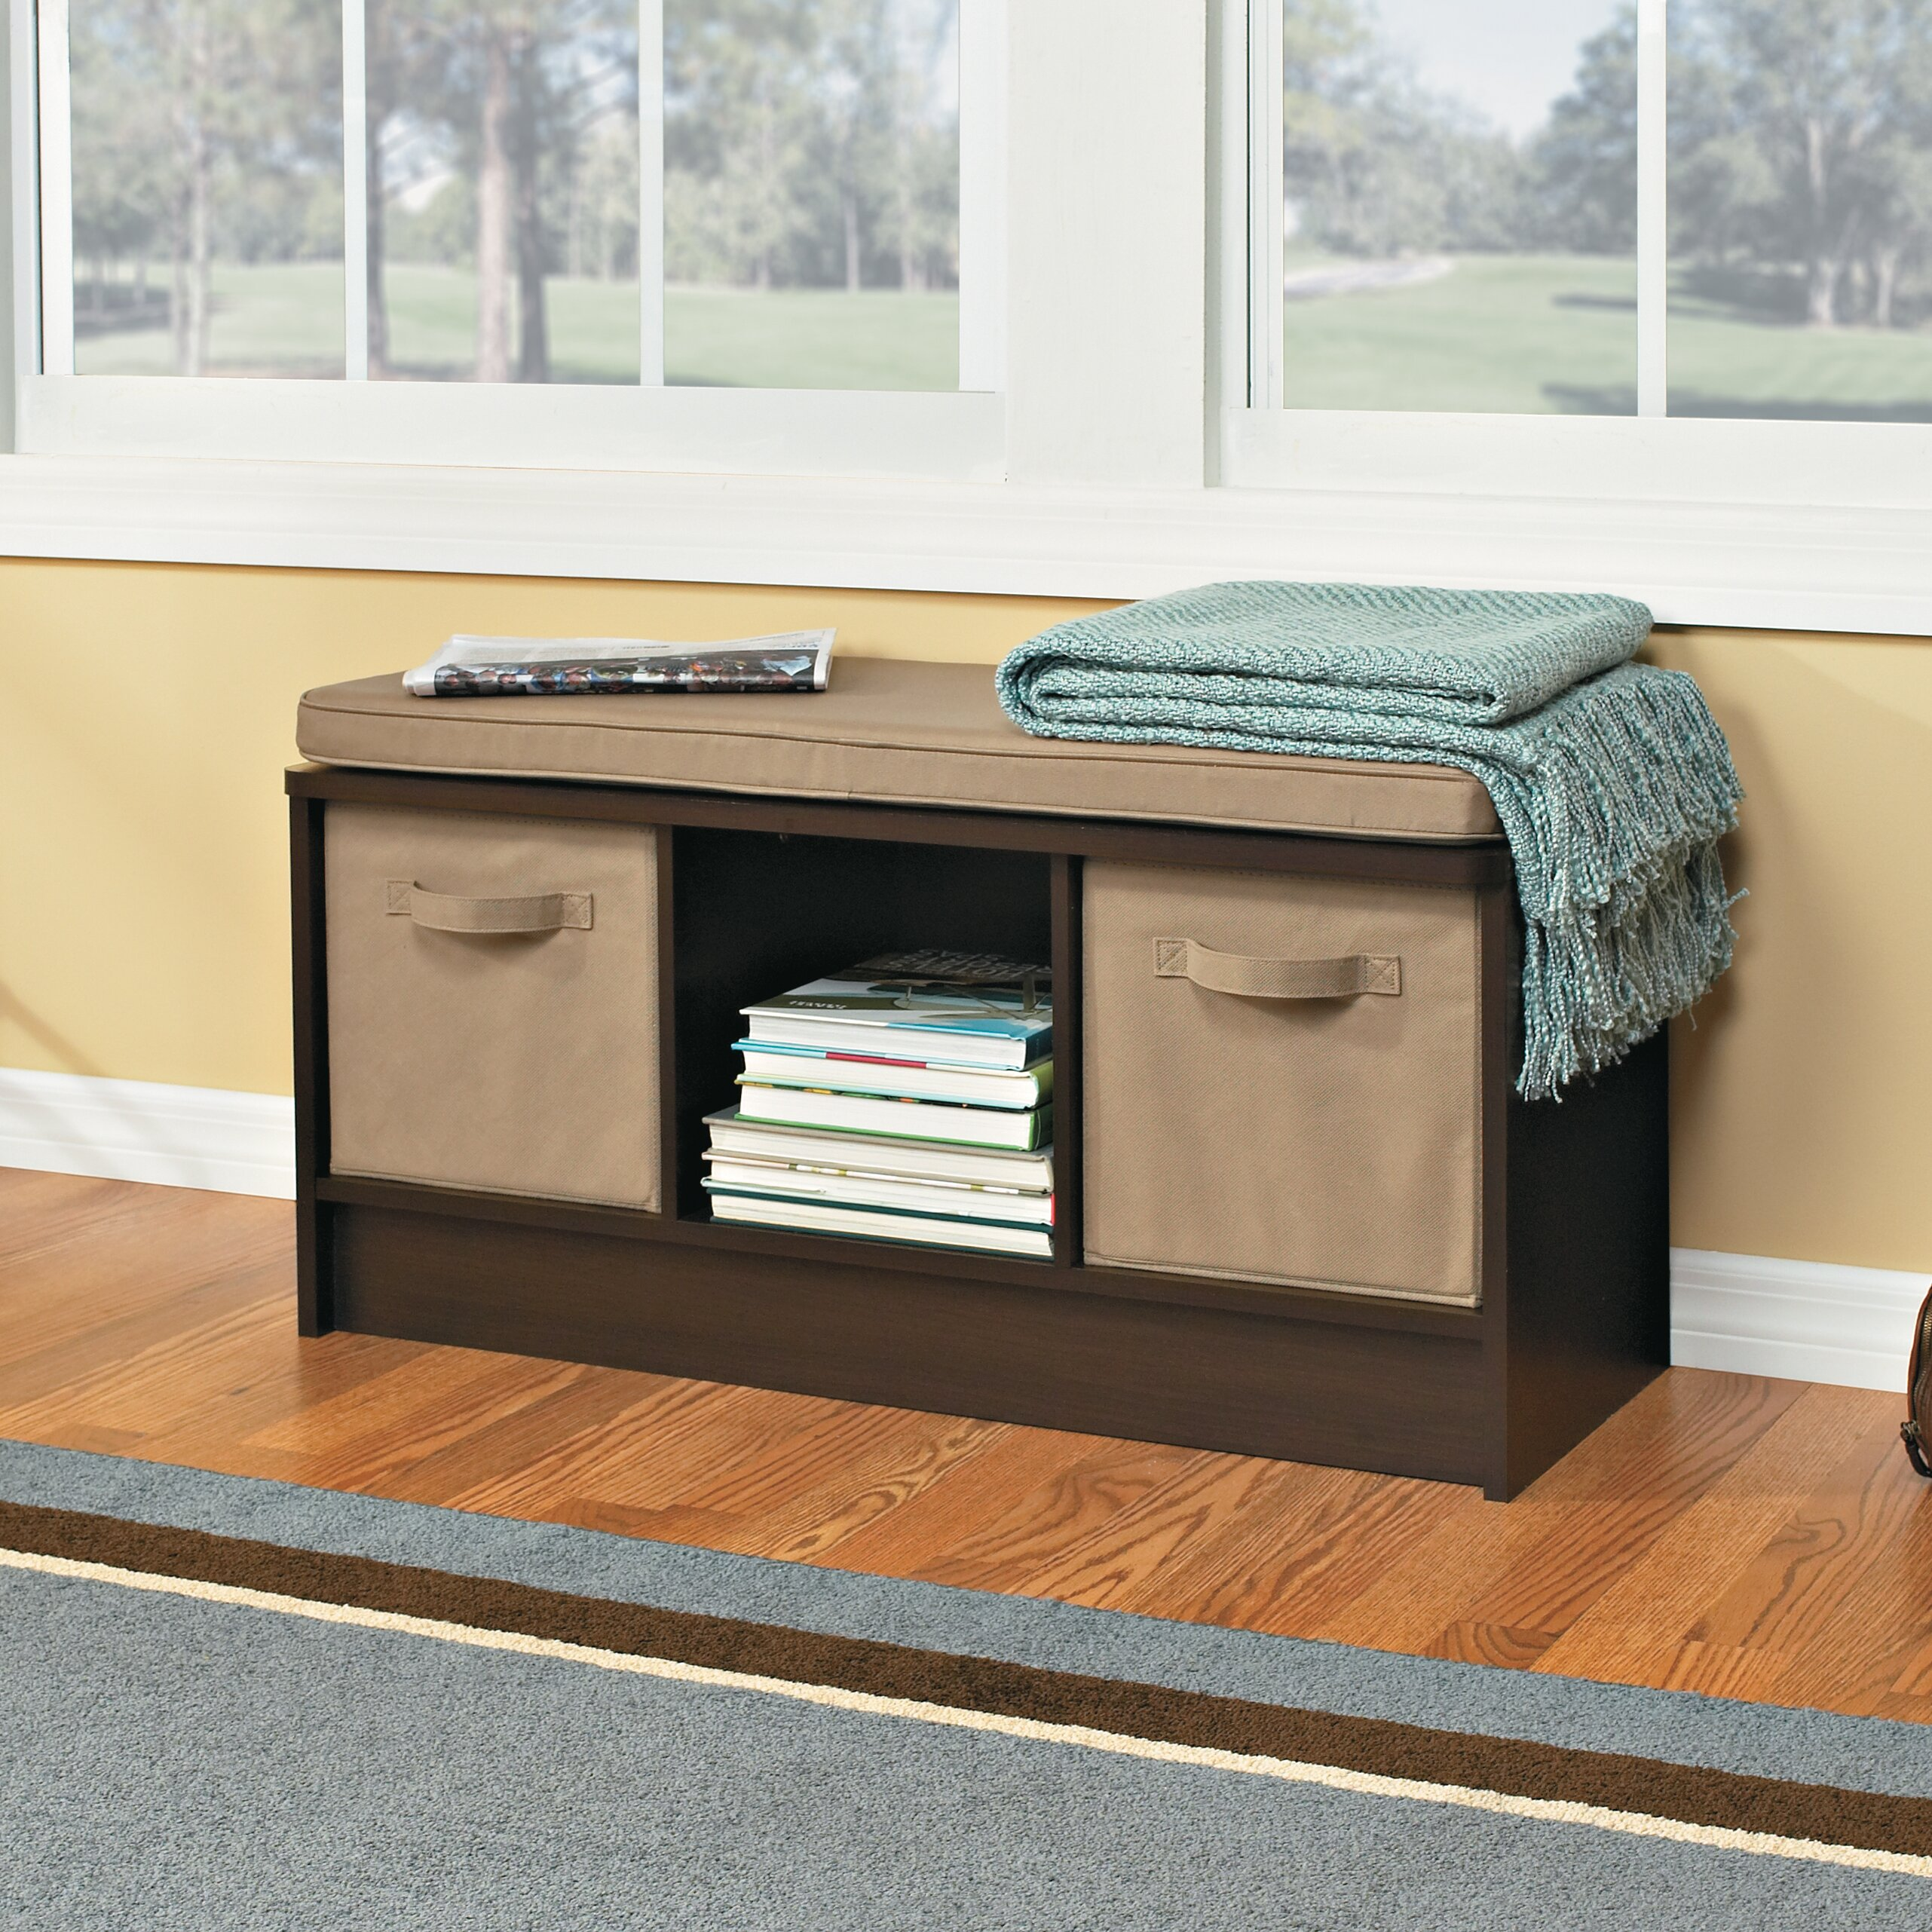 Closetmaid Cubeicals 3 Cube Storage Bench Reviews Wayfair Supply